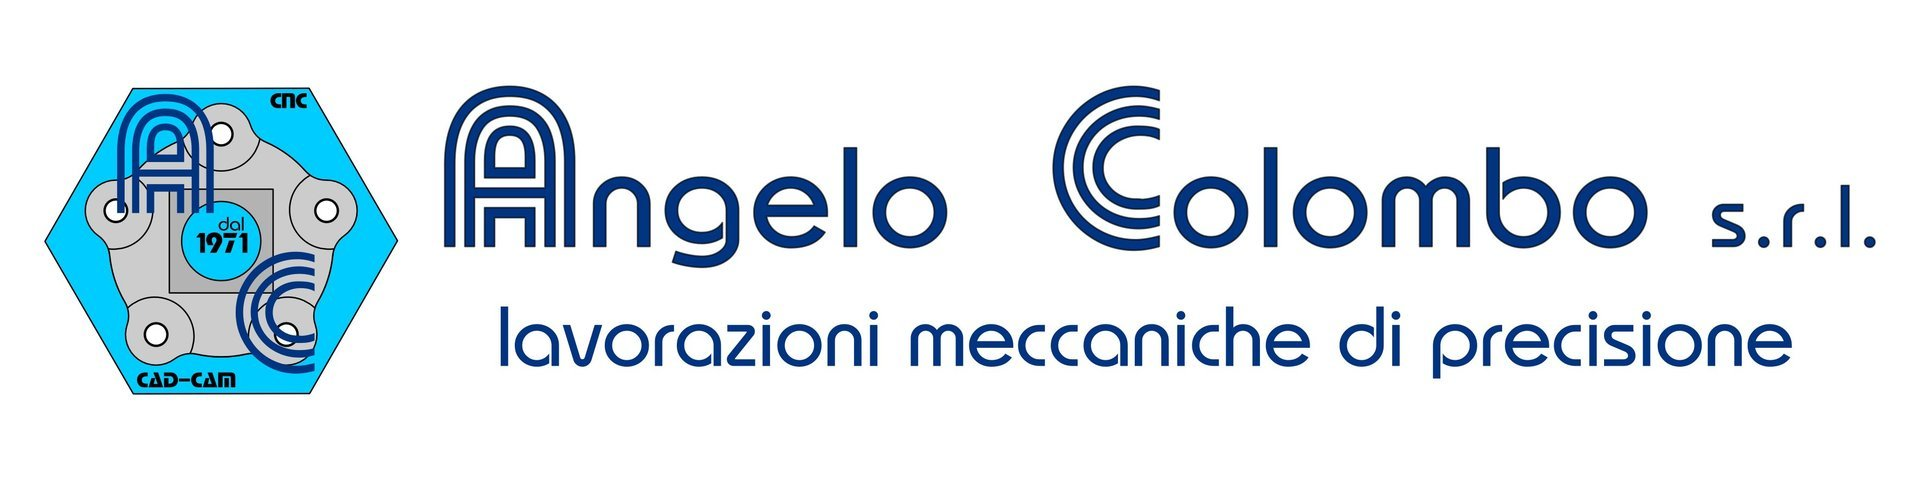 logo_angelo colombo